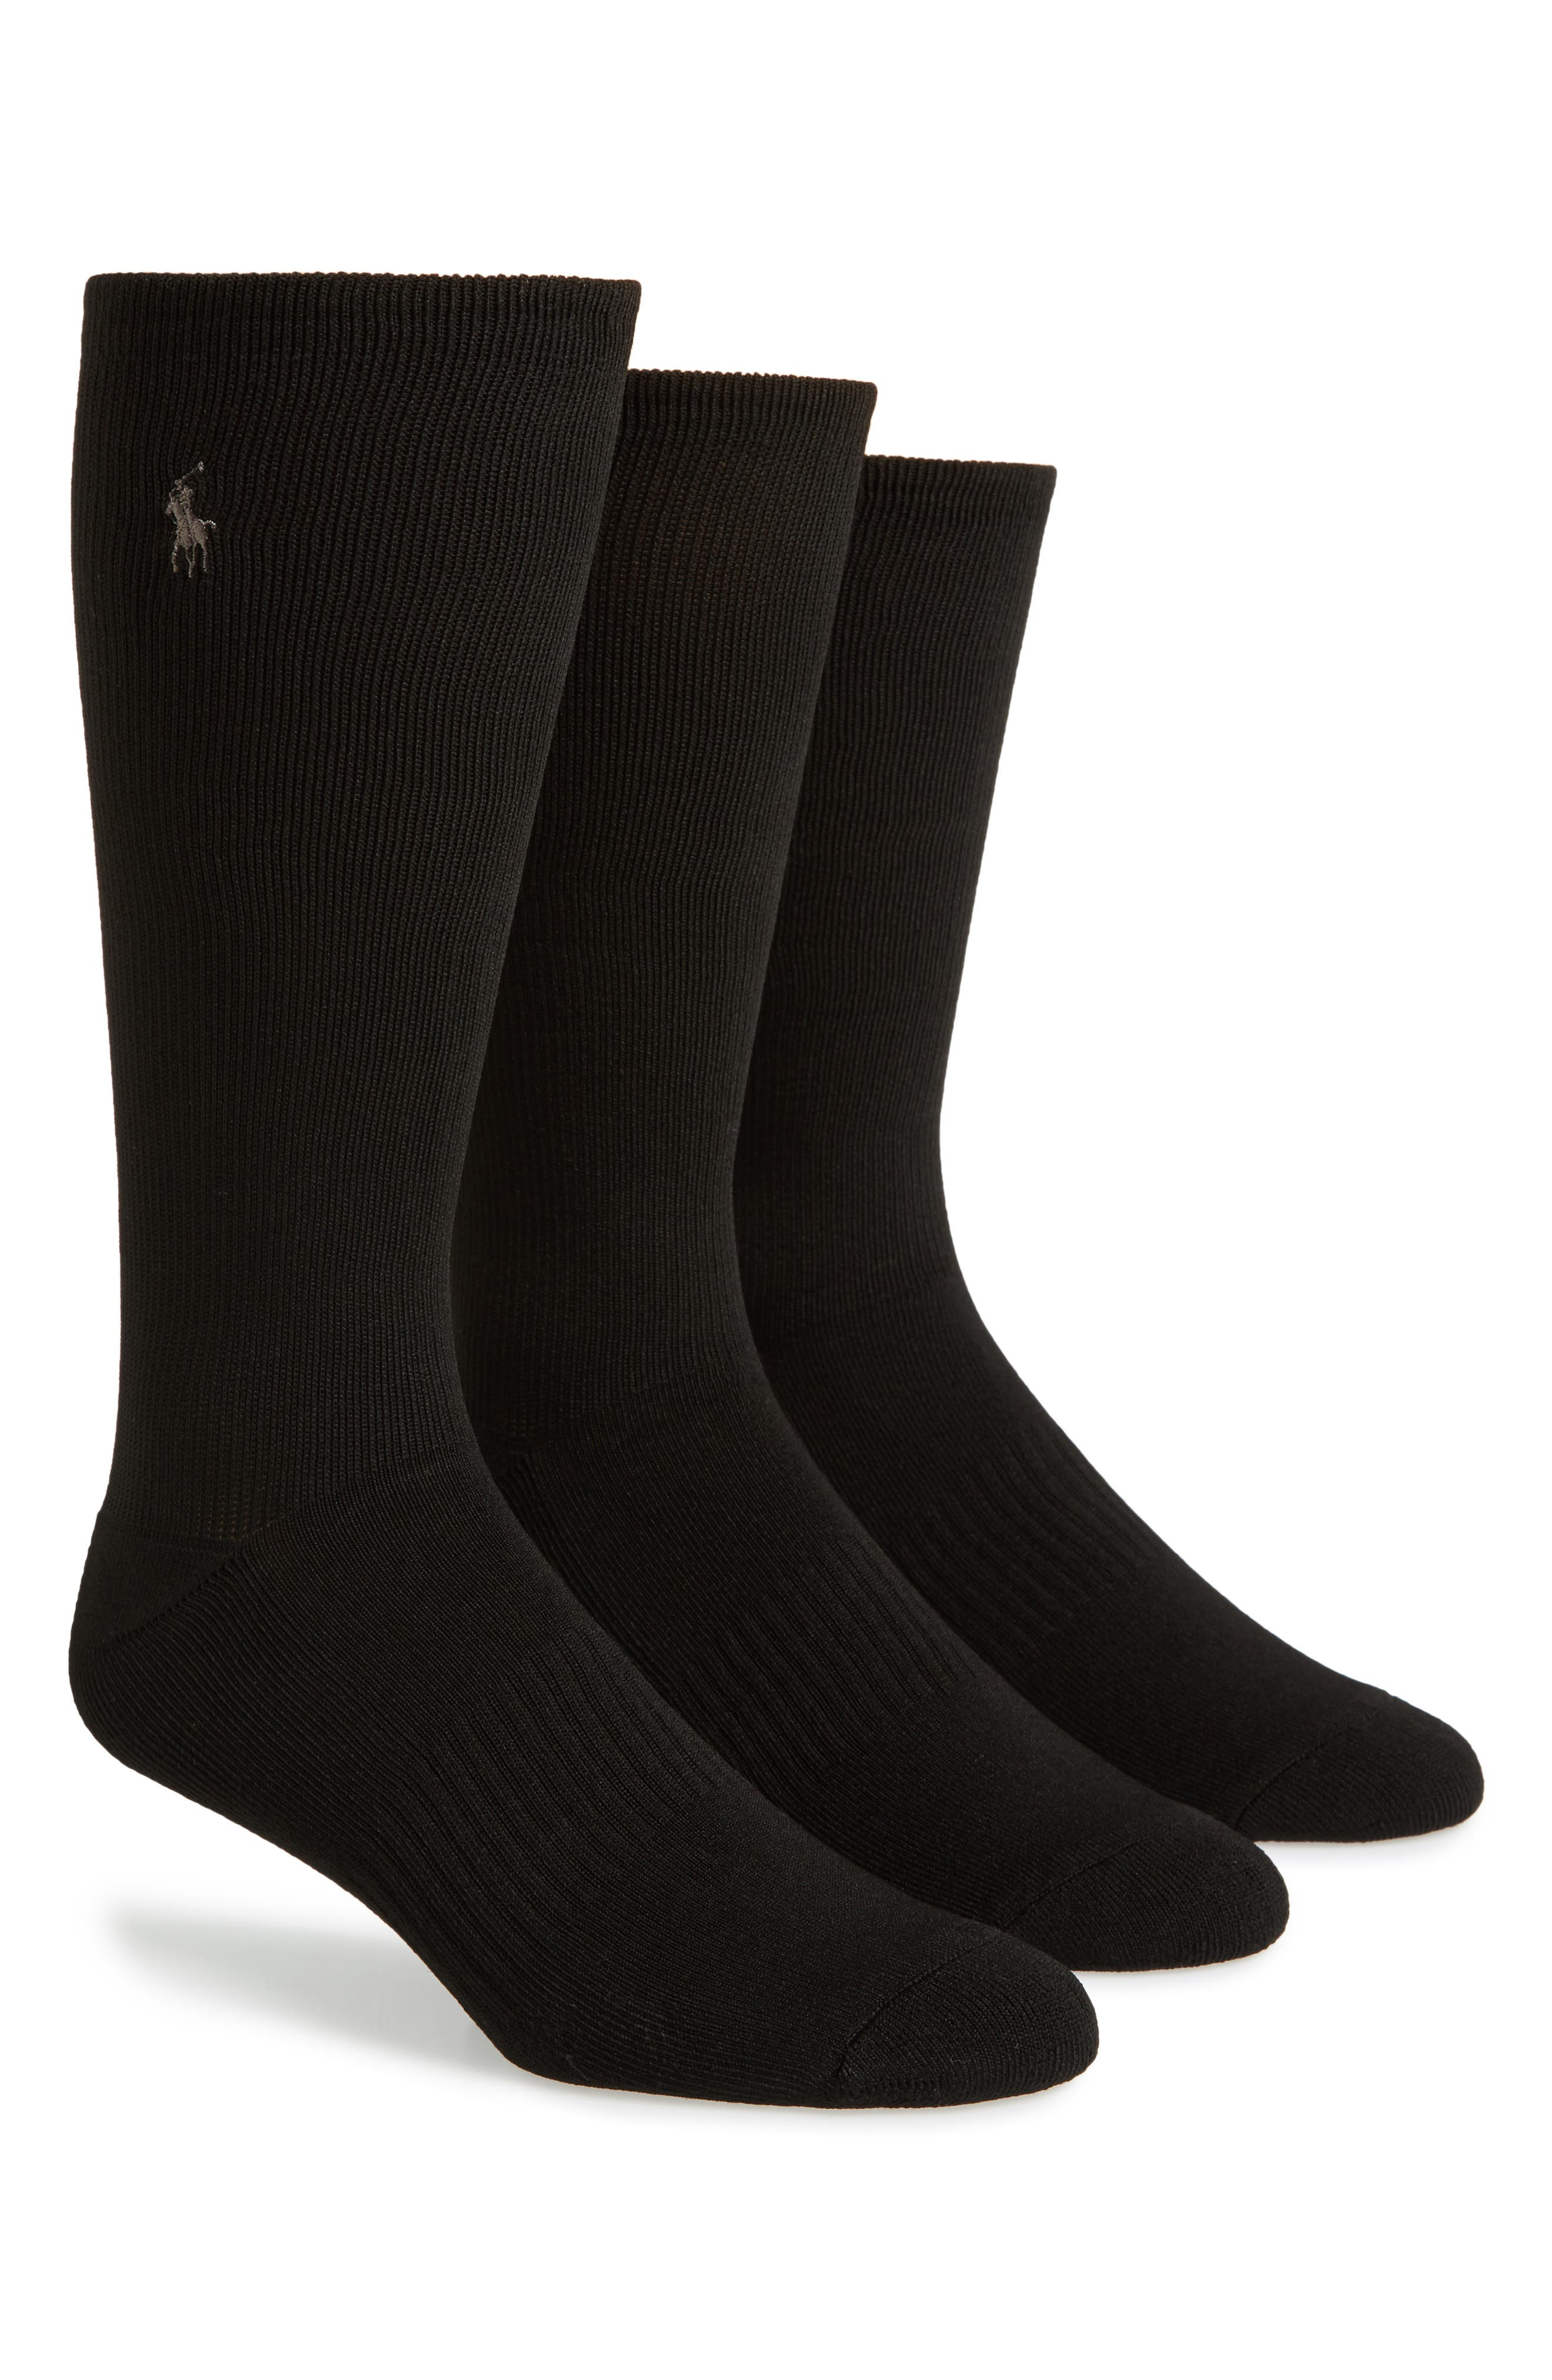 Polo Ralph Lauren 3-Pack Compression Socks